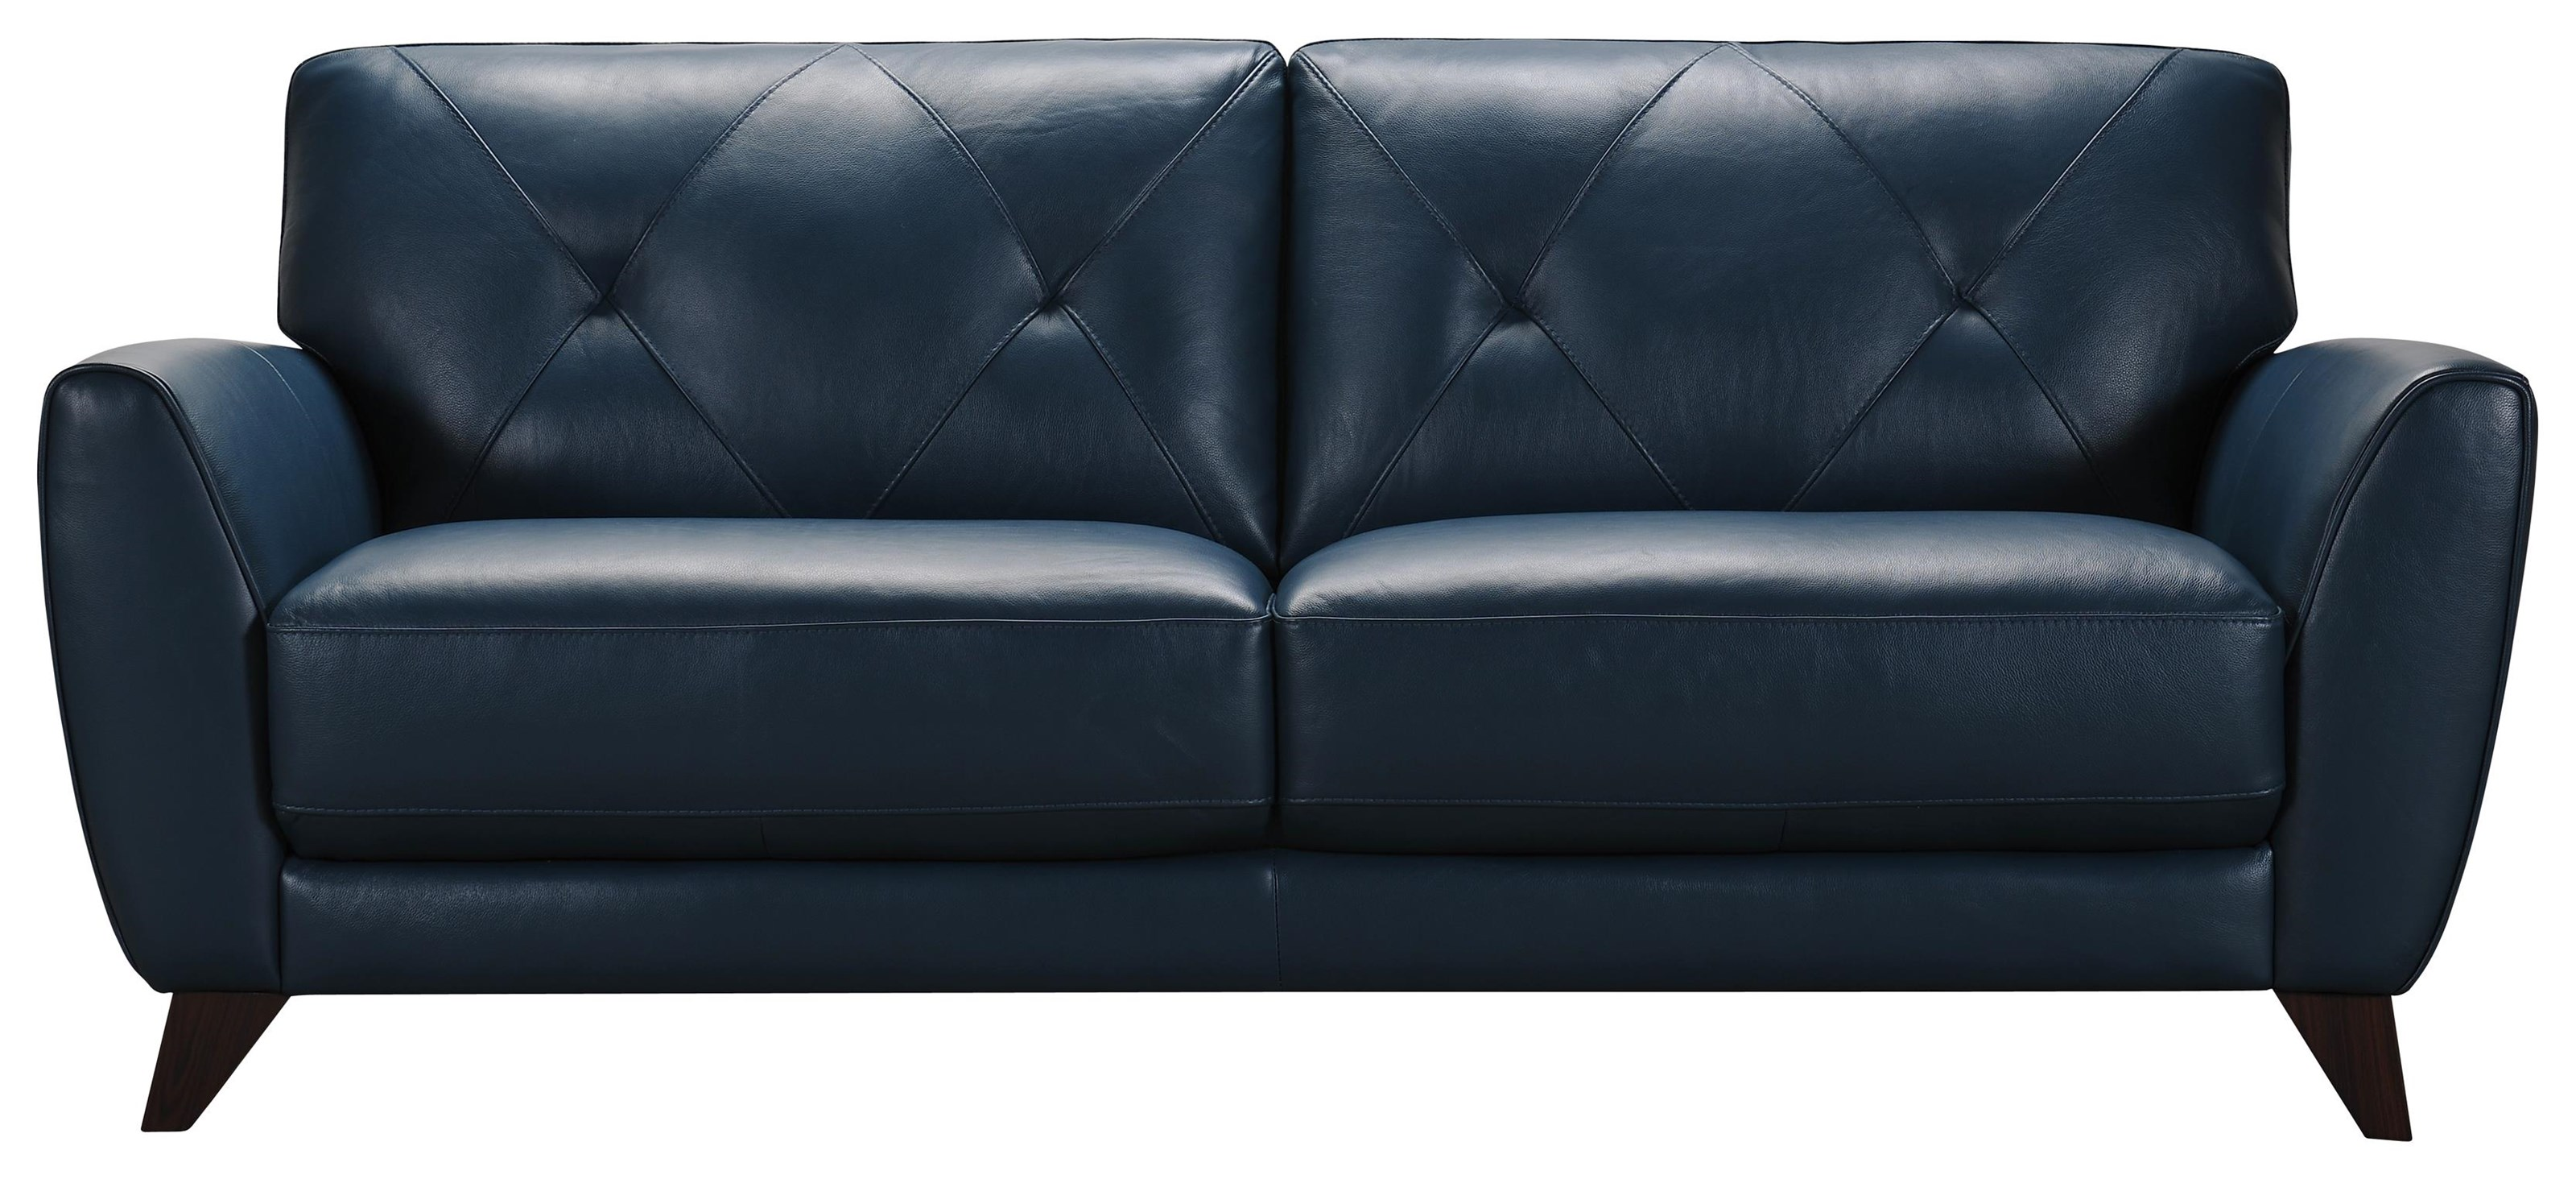 Blue Leather Sofa 3159 Pea Blue Leather Sofa By Violino At